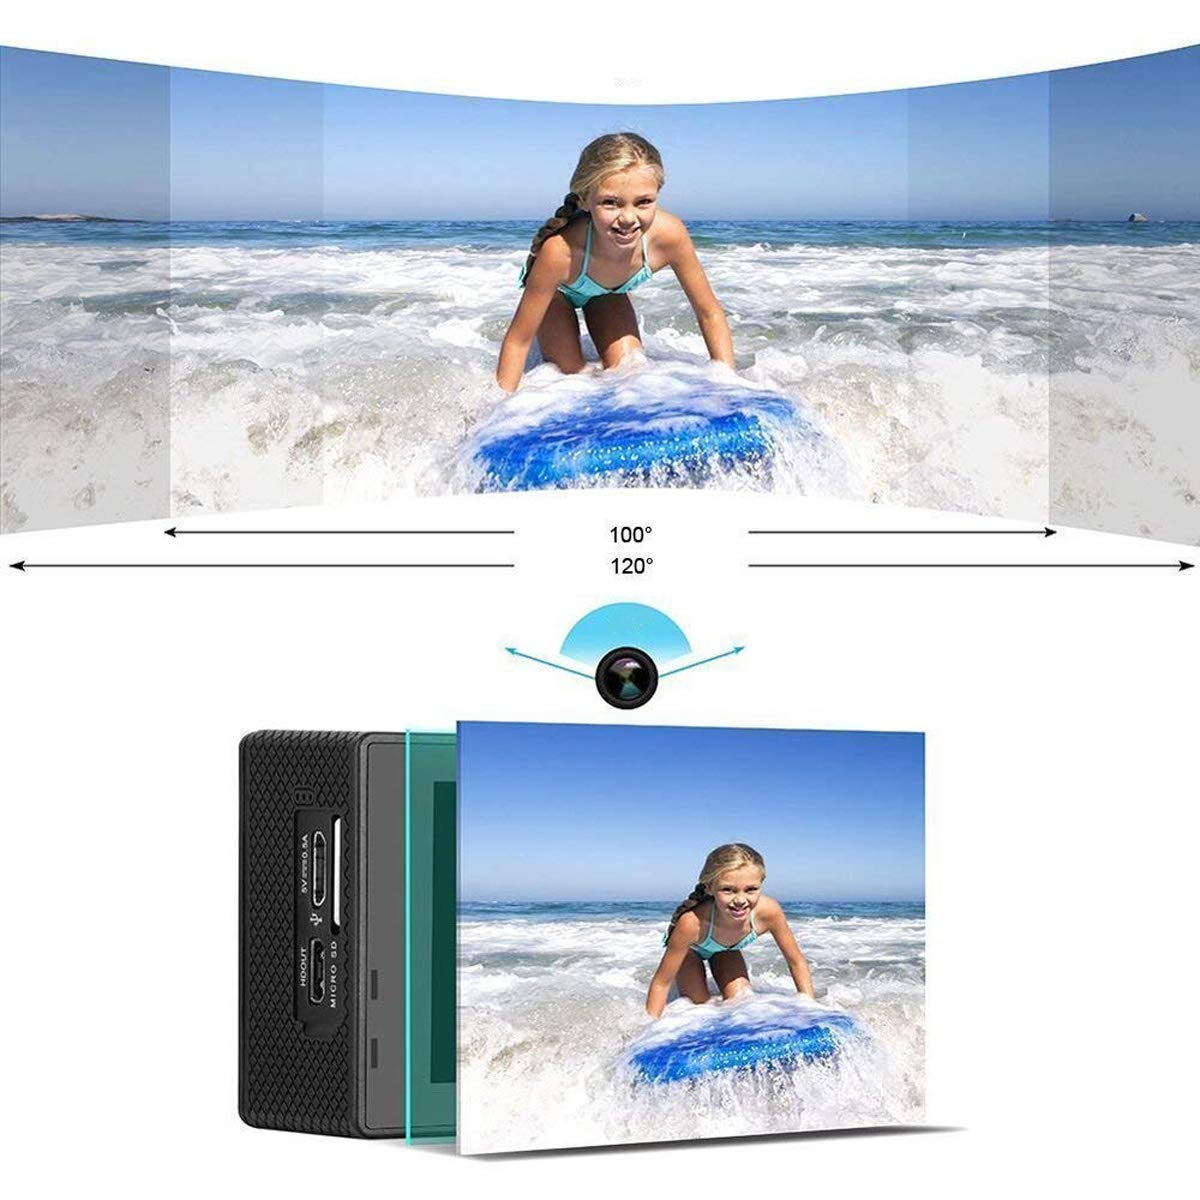 Nesolo Kids Digital Camera, Waterproof Camera for Kids Toy for Boy Girls Holiday Birthday Gift with 2.0 Inch LCD Display by Nesolo (Image #5)